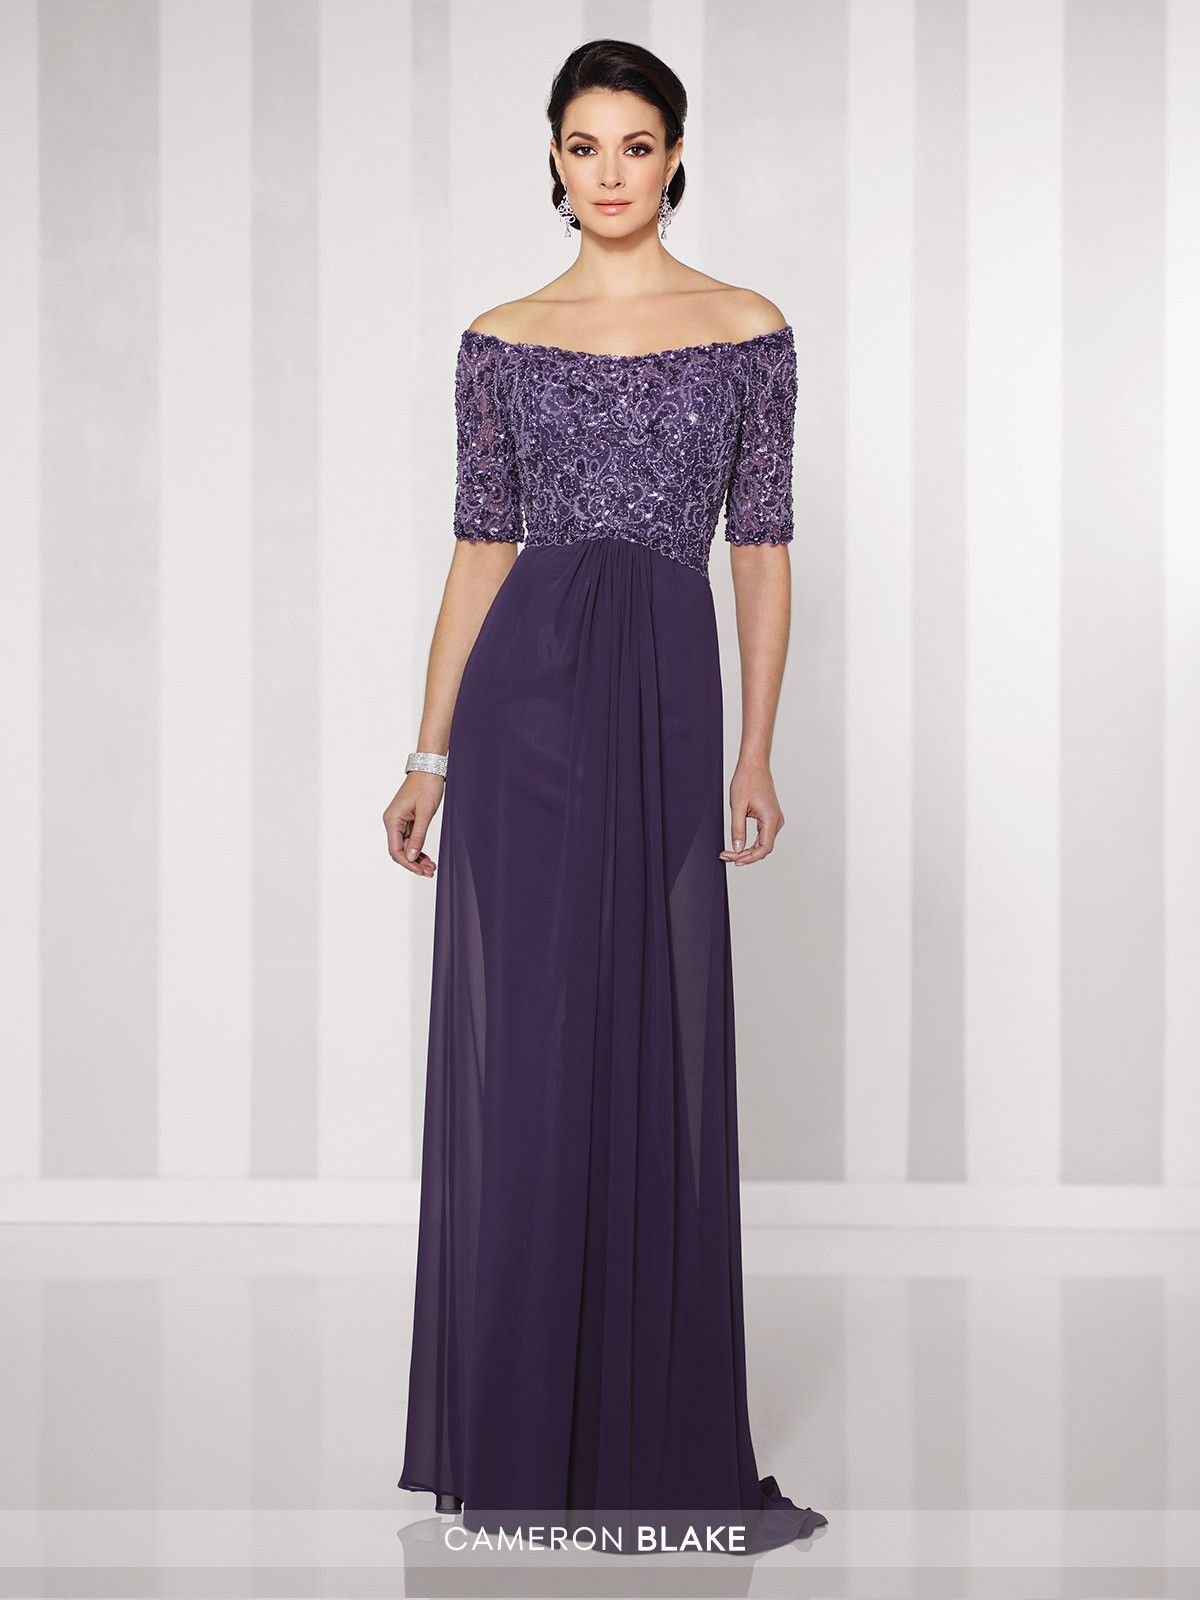 Cameron Blake - 216687 - All Dressed Up, Mother/Guest | Vestido ...